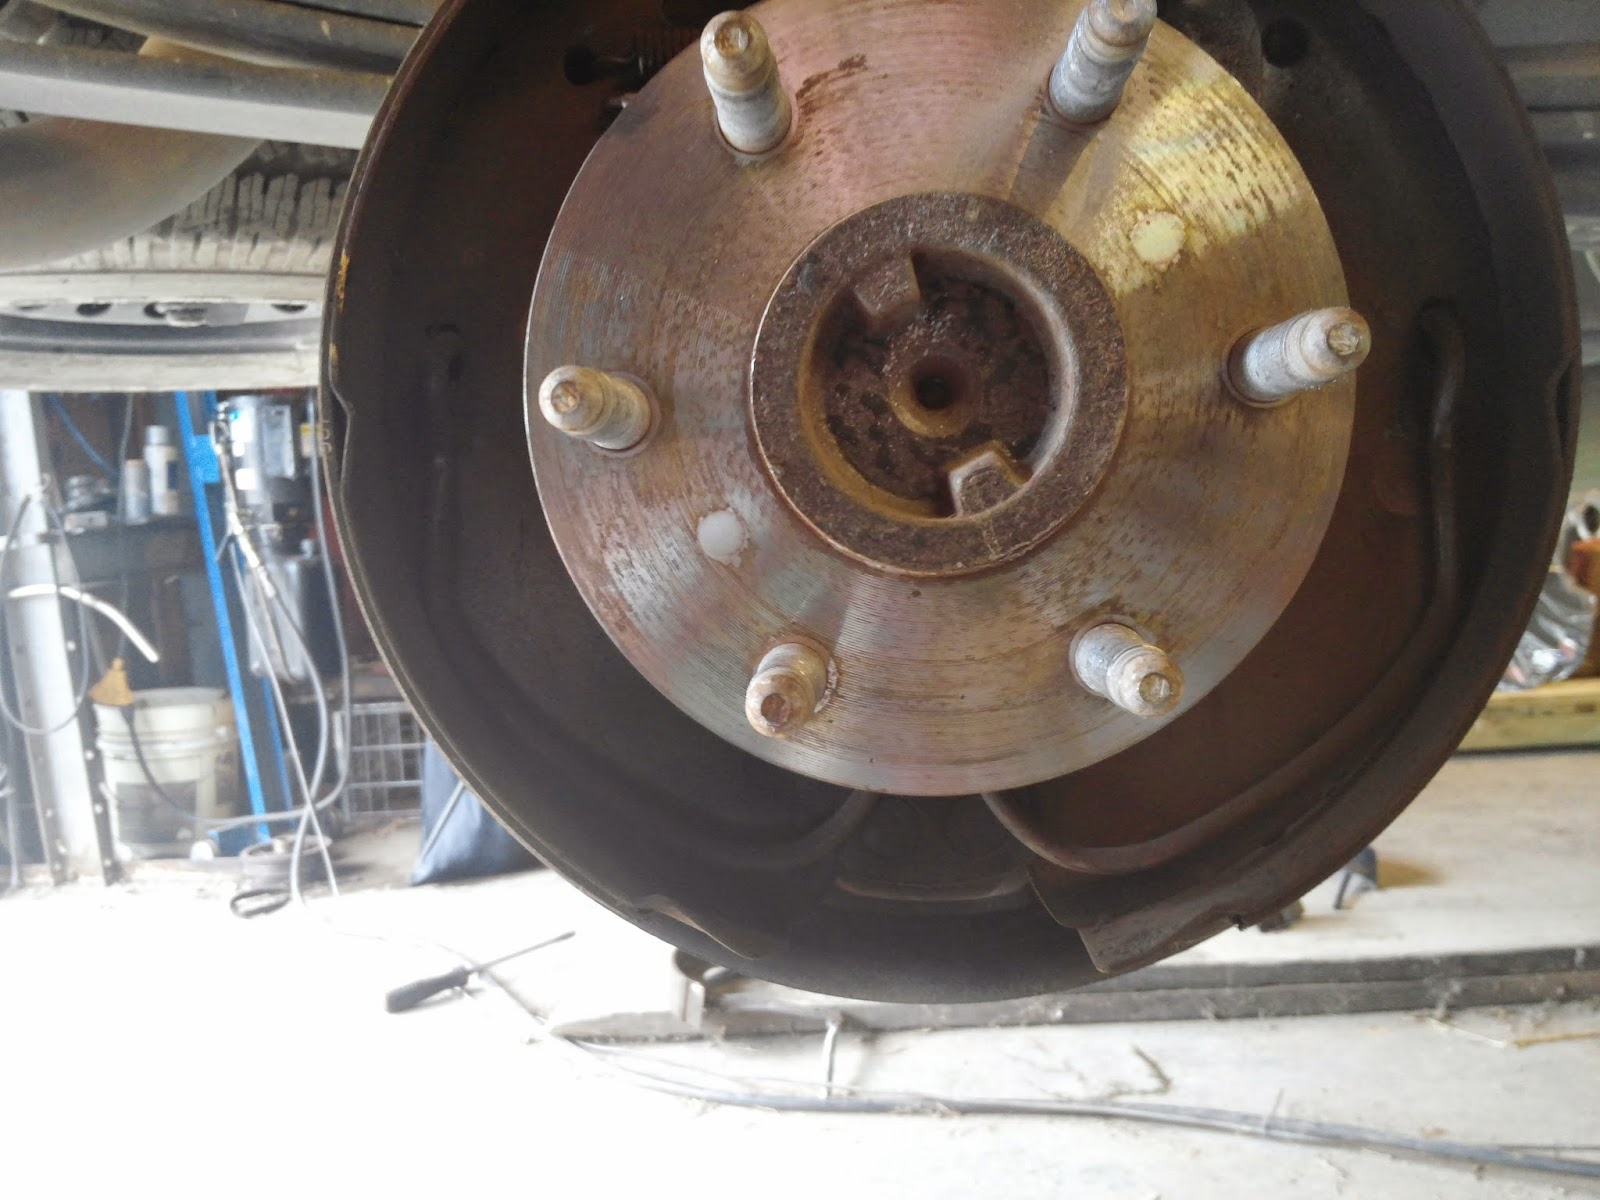 hight resolution of in the picture below you will see one of the brake shoes on this application the whole apparatus is replaced when you purchase the new brake shoes